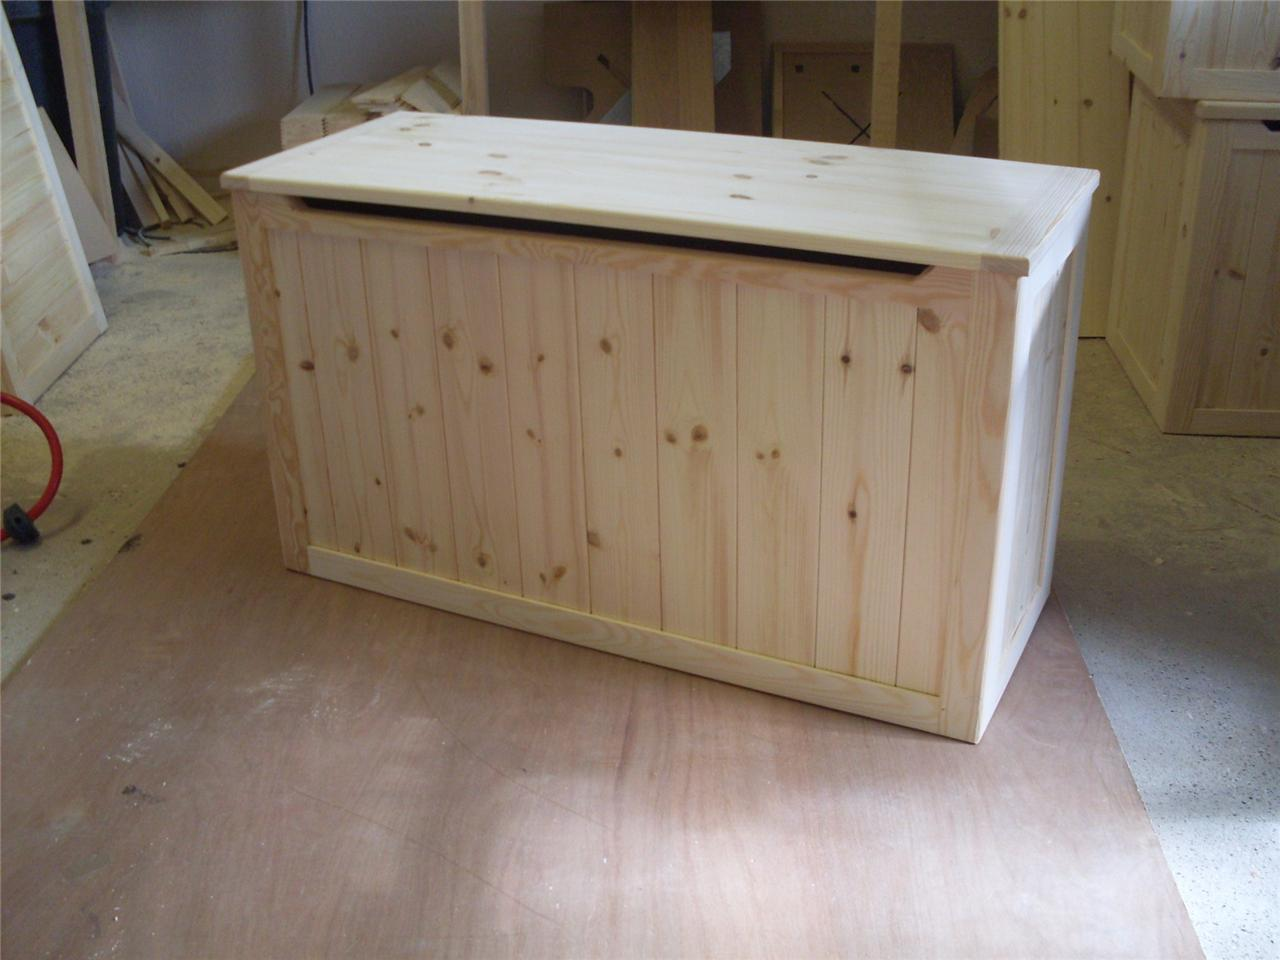 making wood toy boxes - woodworking plans for table lamps